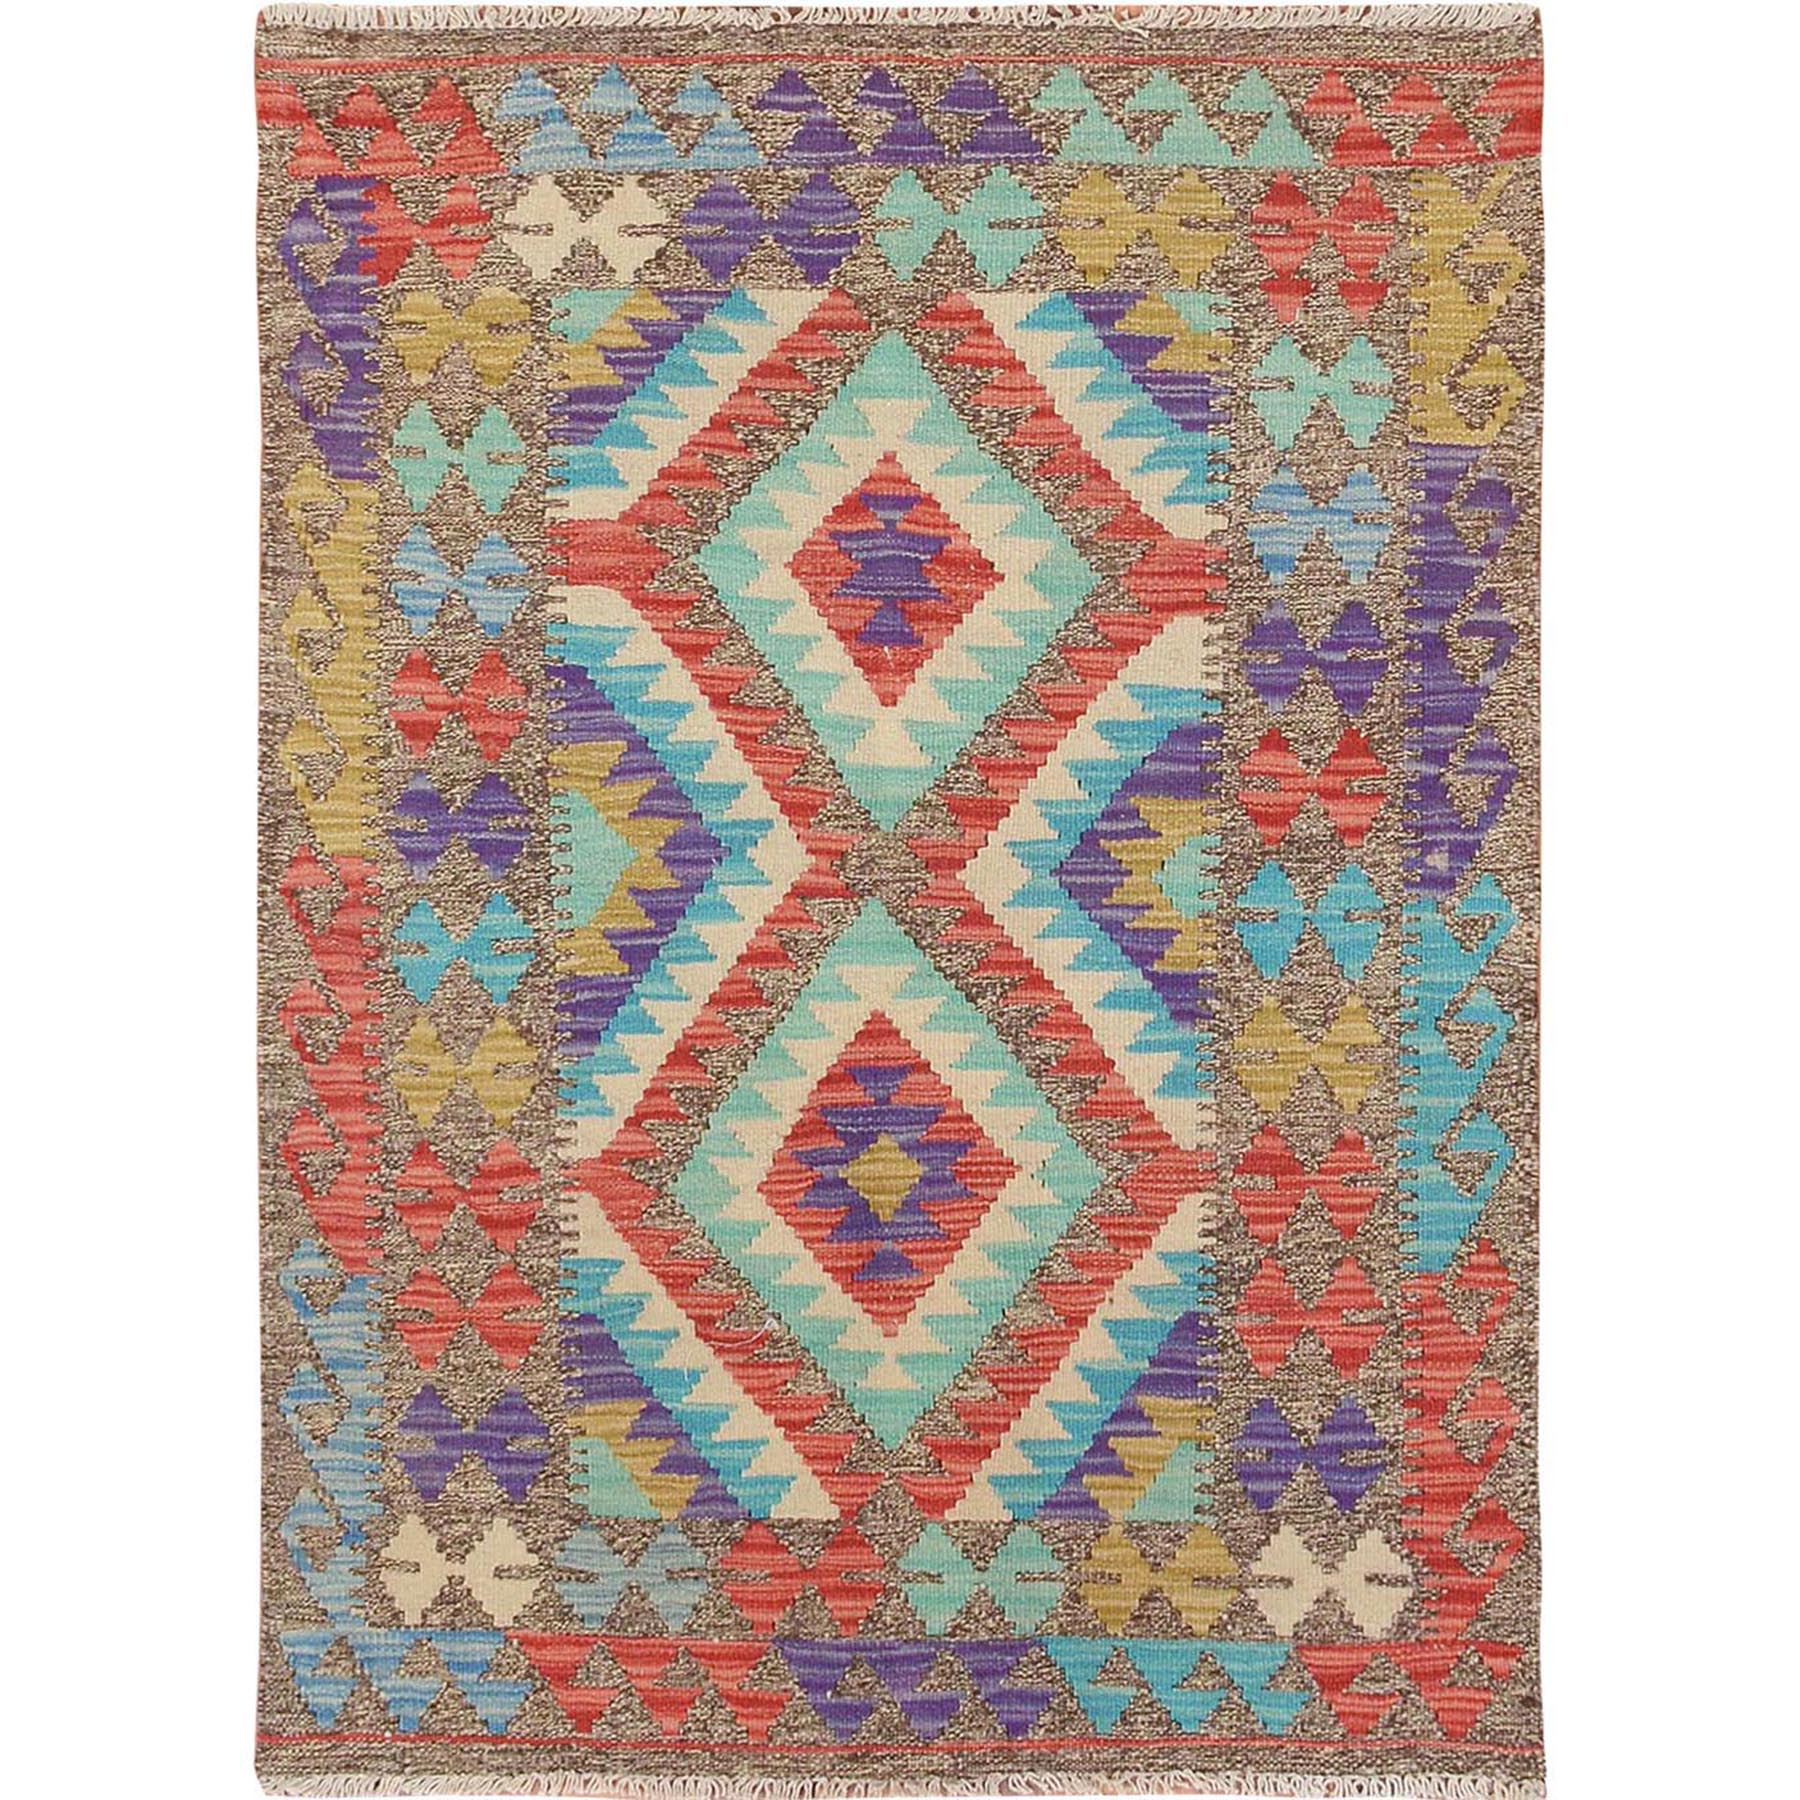 3'x4' Colorful Reversible Geometric Design Afghan Kilim Flat Weave Pure Wool Hand Woven Oriental Rug